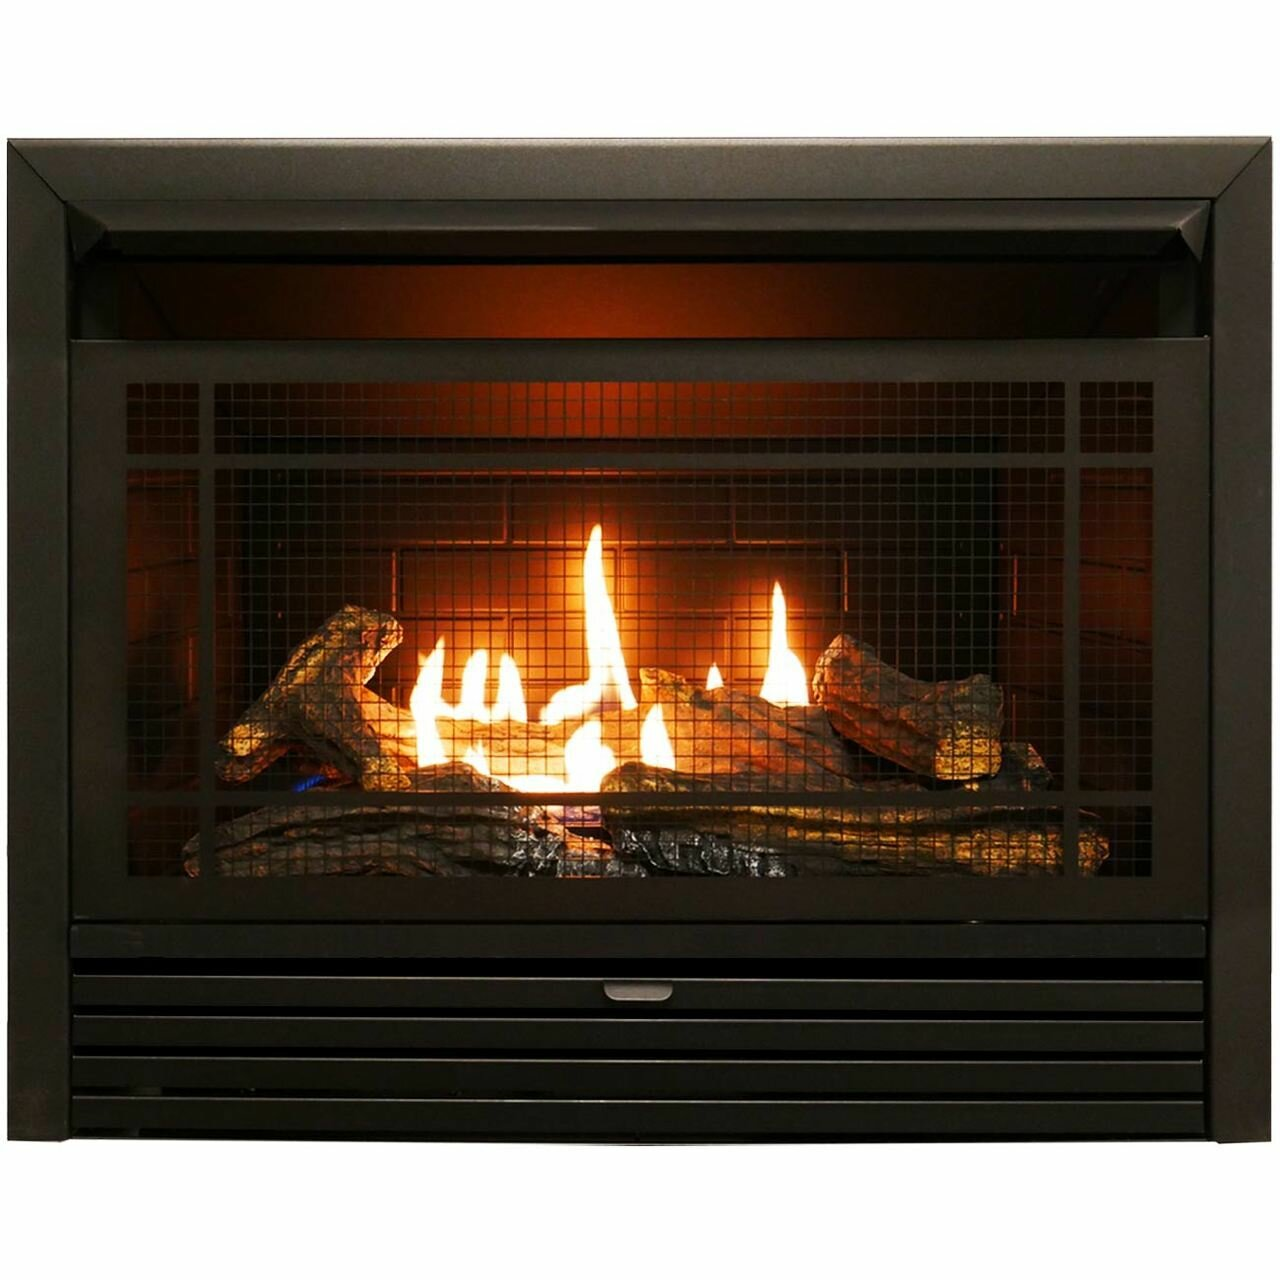 Charlton home hardwick vent free recessed natural gas propane fireplace insert reviews wayfair